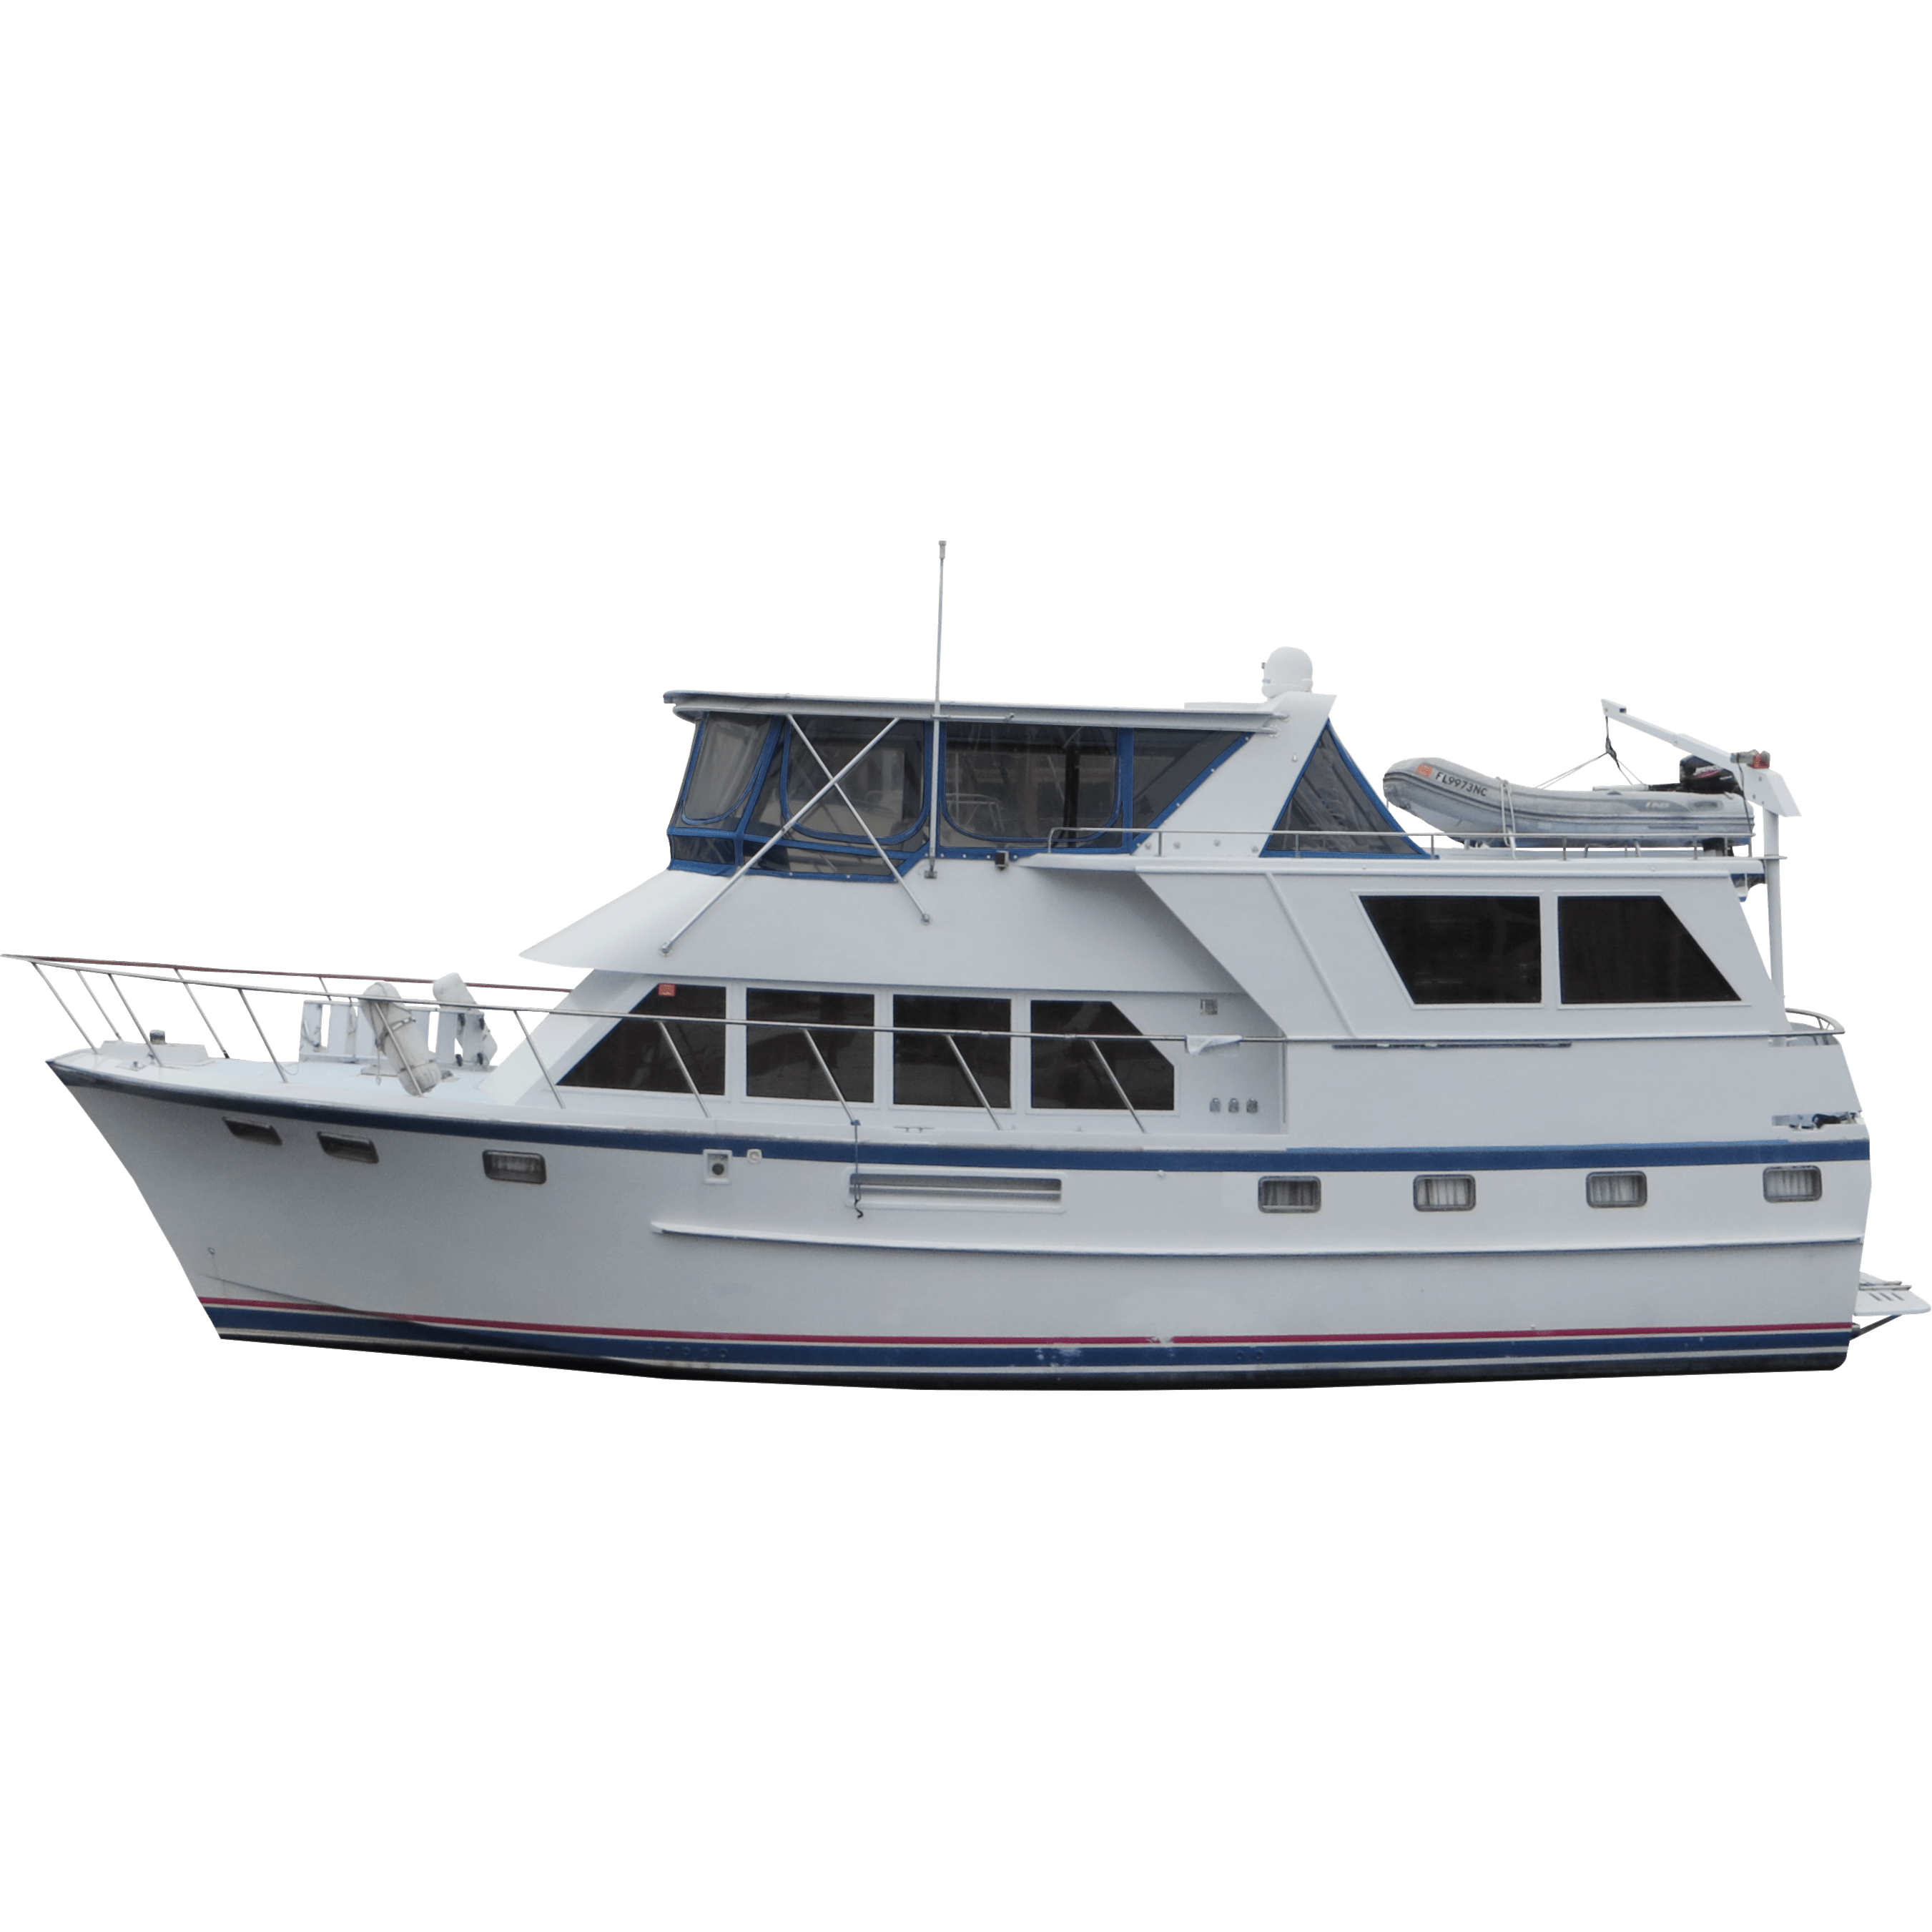 Yacht png ship. Small transparent stickpng download